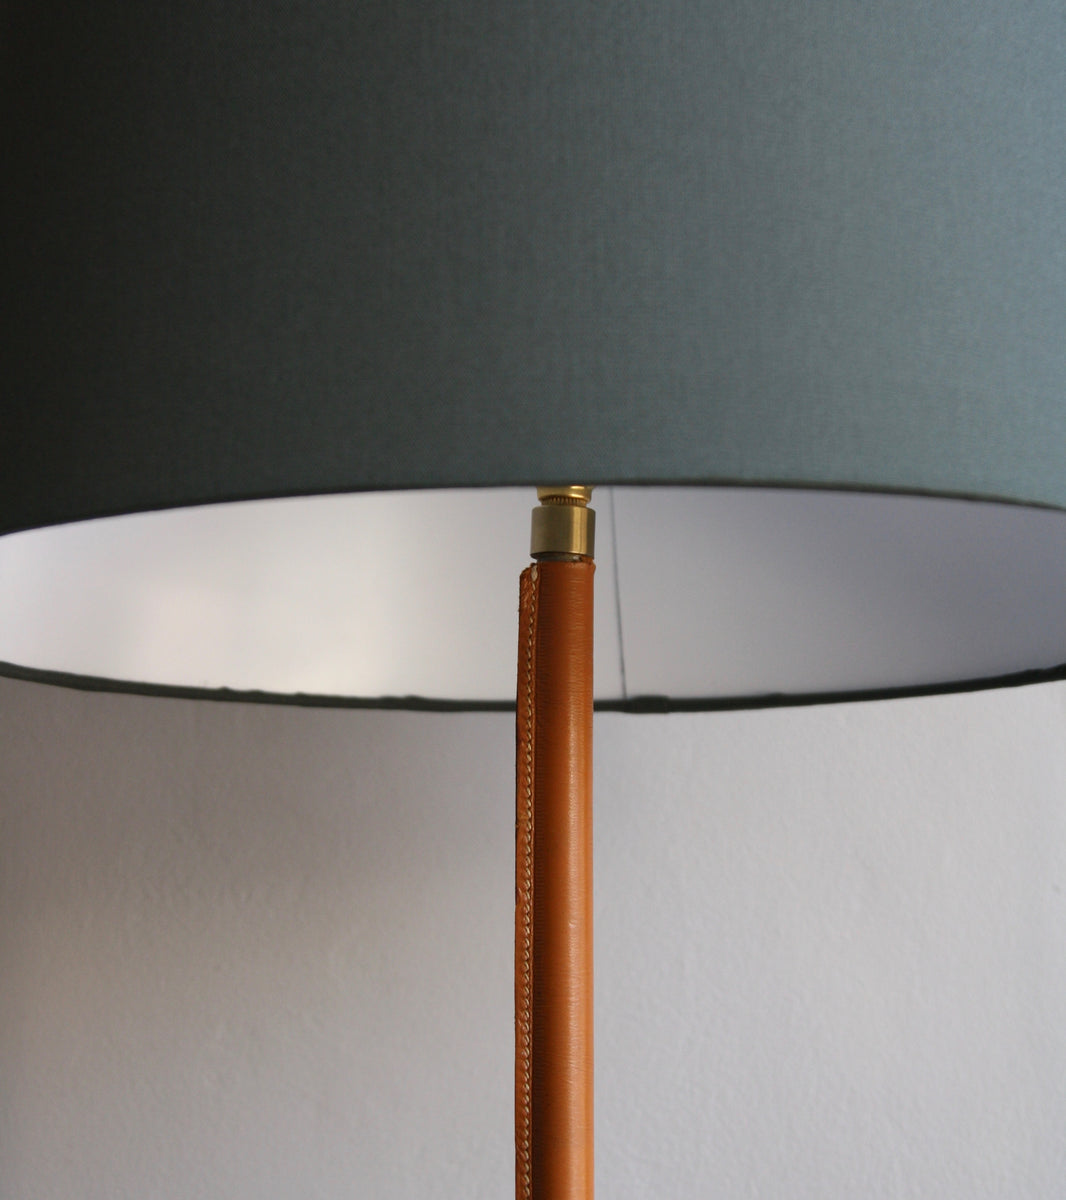 Brass & Tan Leather Floor Light, Denmark, Circa 1950